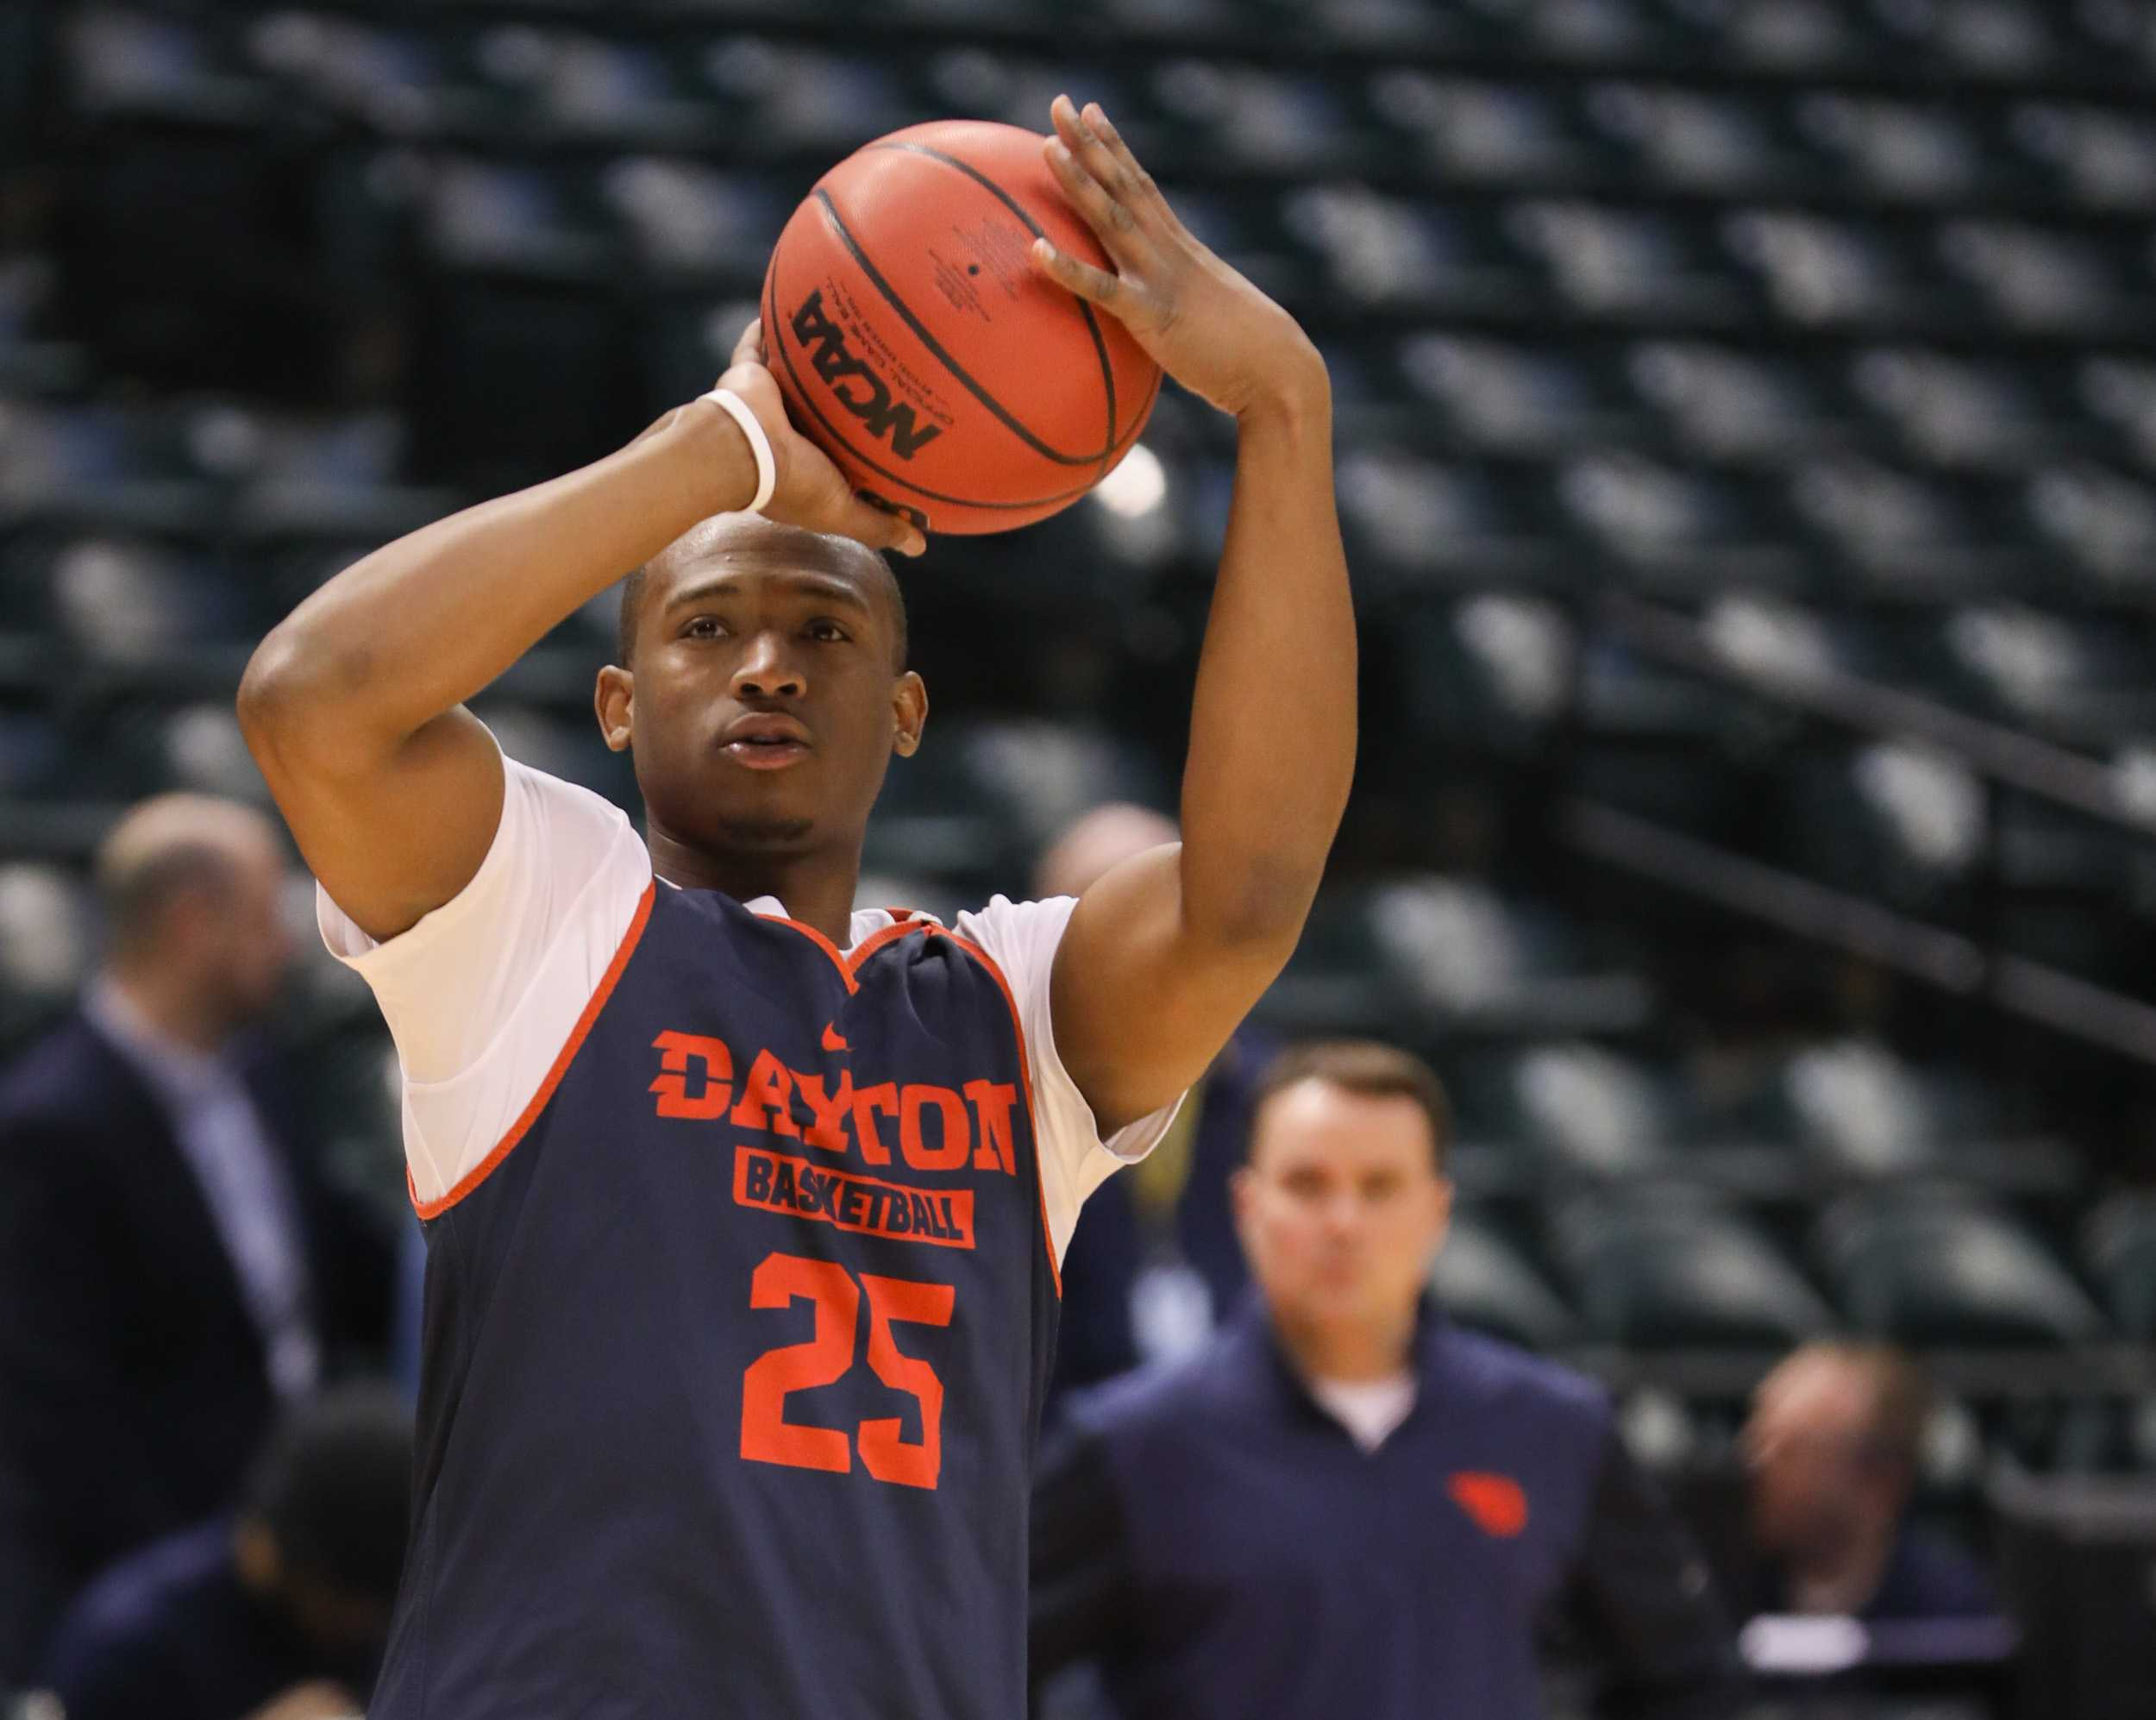 Dayton's Kendall Pollard practices shooting threes at the open practice in Bankers Life Fieldhouse before facing Wichita State University Shockers on Friday. (Mar. 16, 2017)